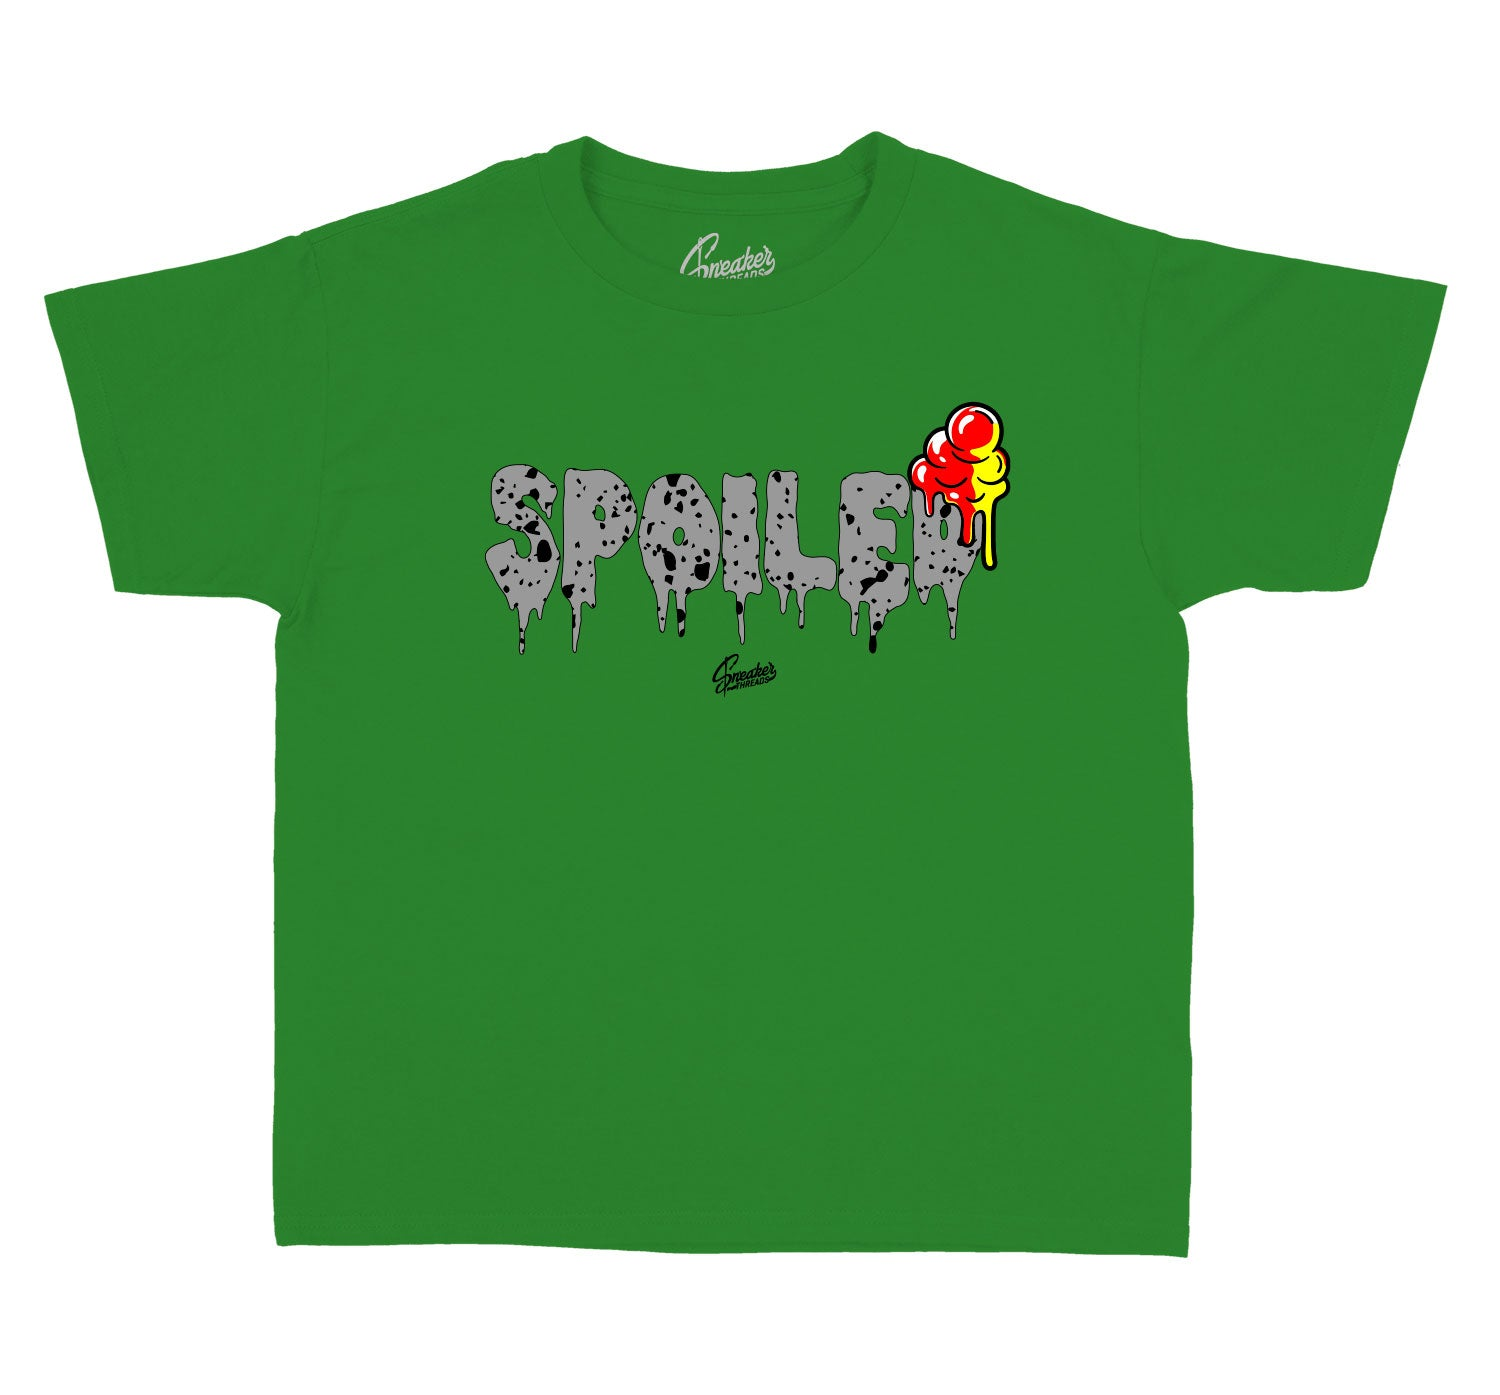 Rasta Jorda 4 sneaker collection matching childrens shirt collection